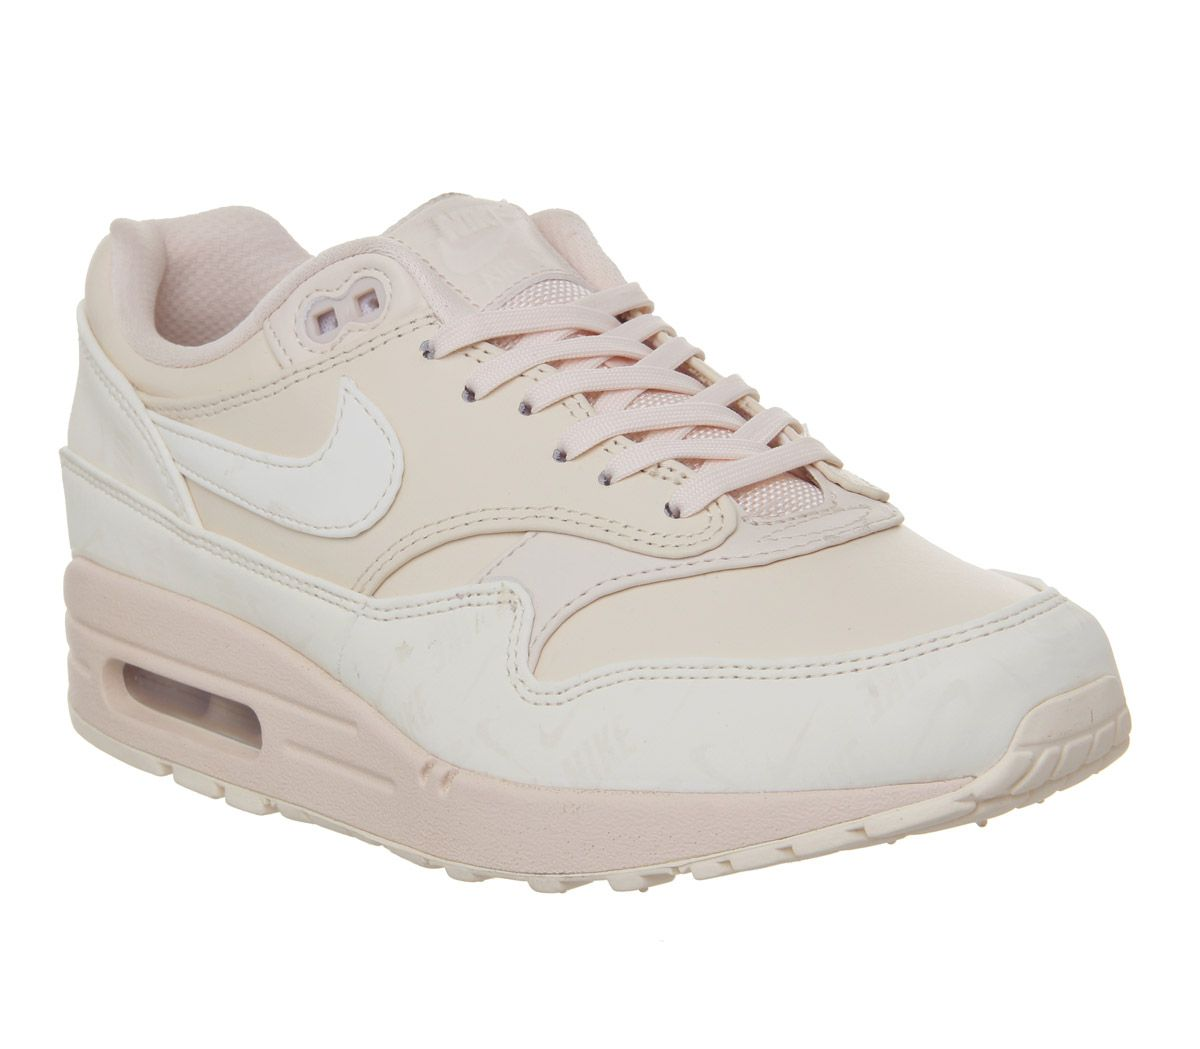 online store 6be54 675e2 Nike Air Max 1 Trainers Guava Ice Lx - Hers trainers